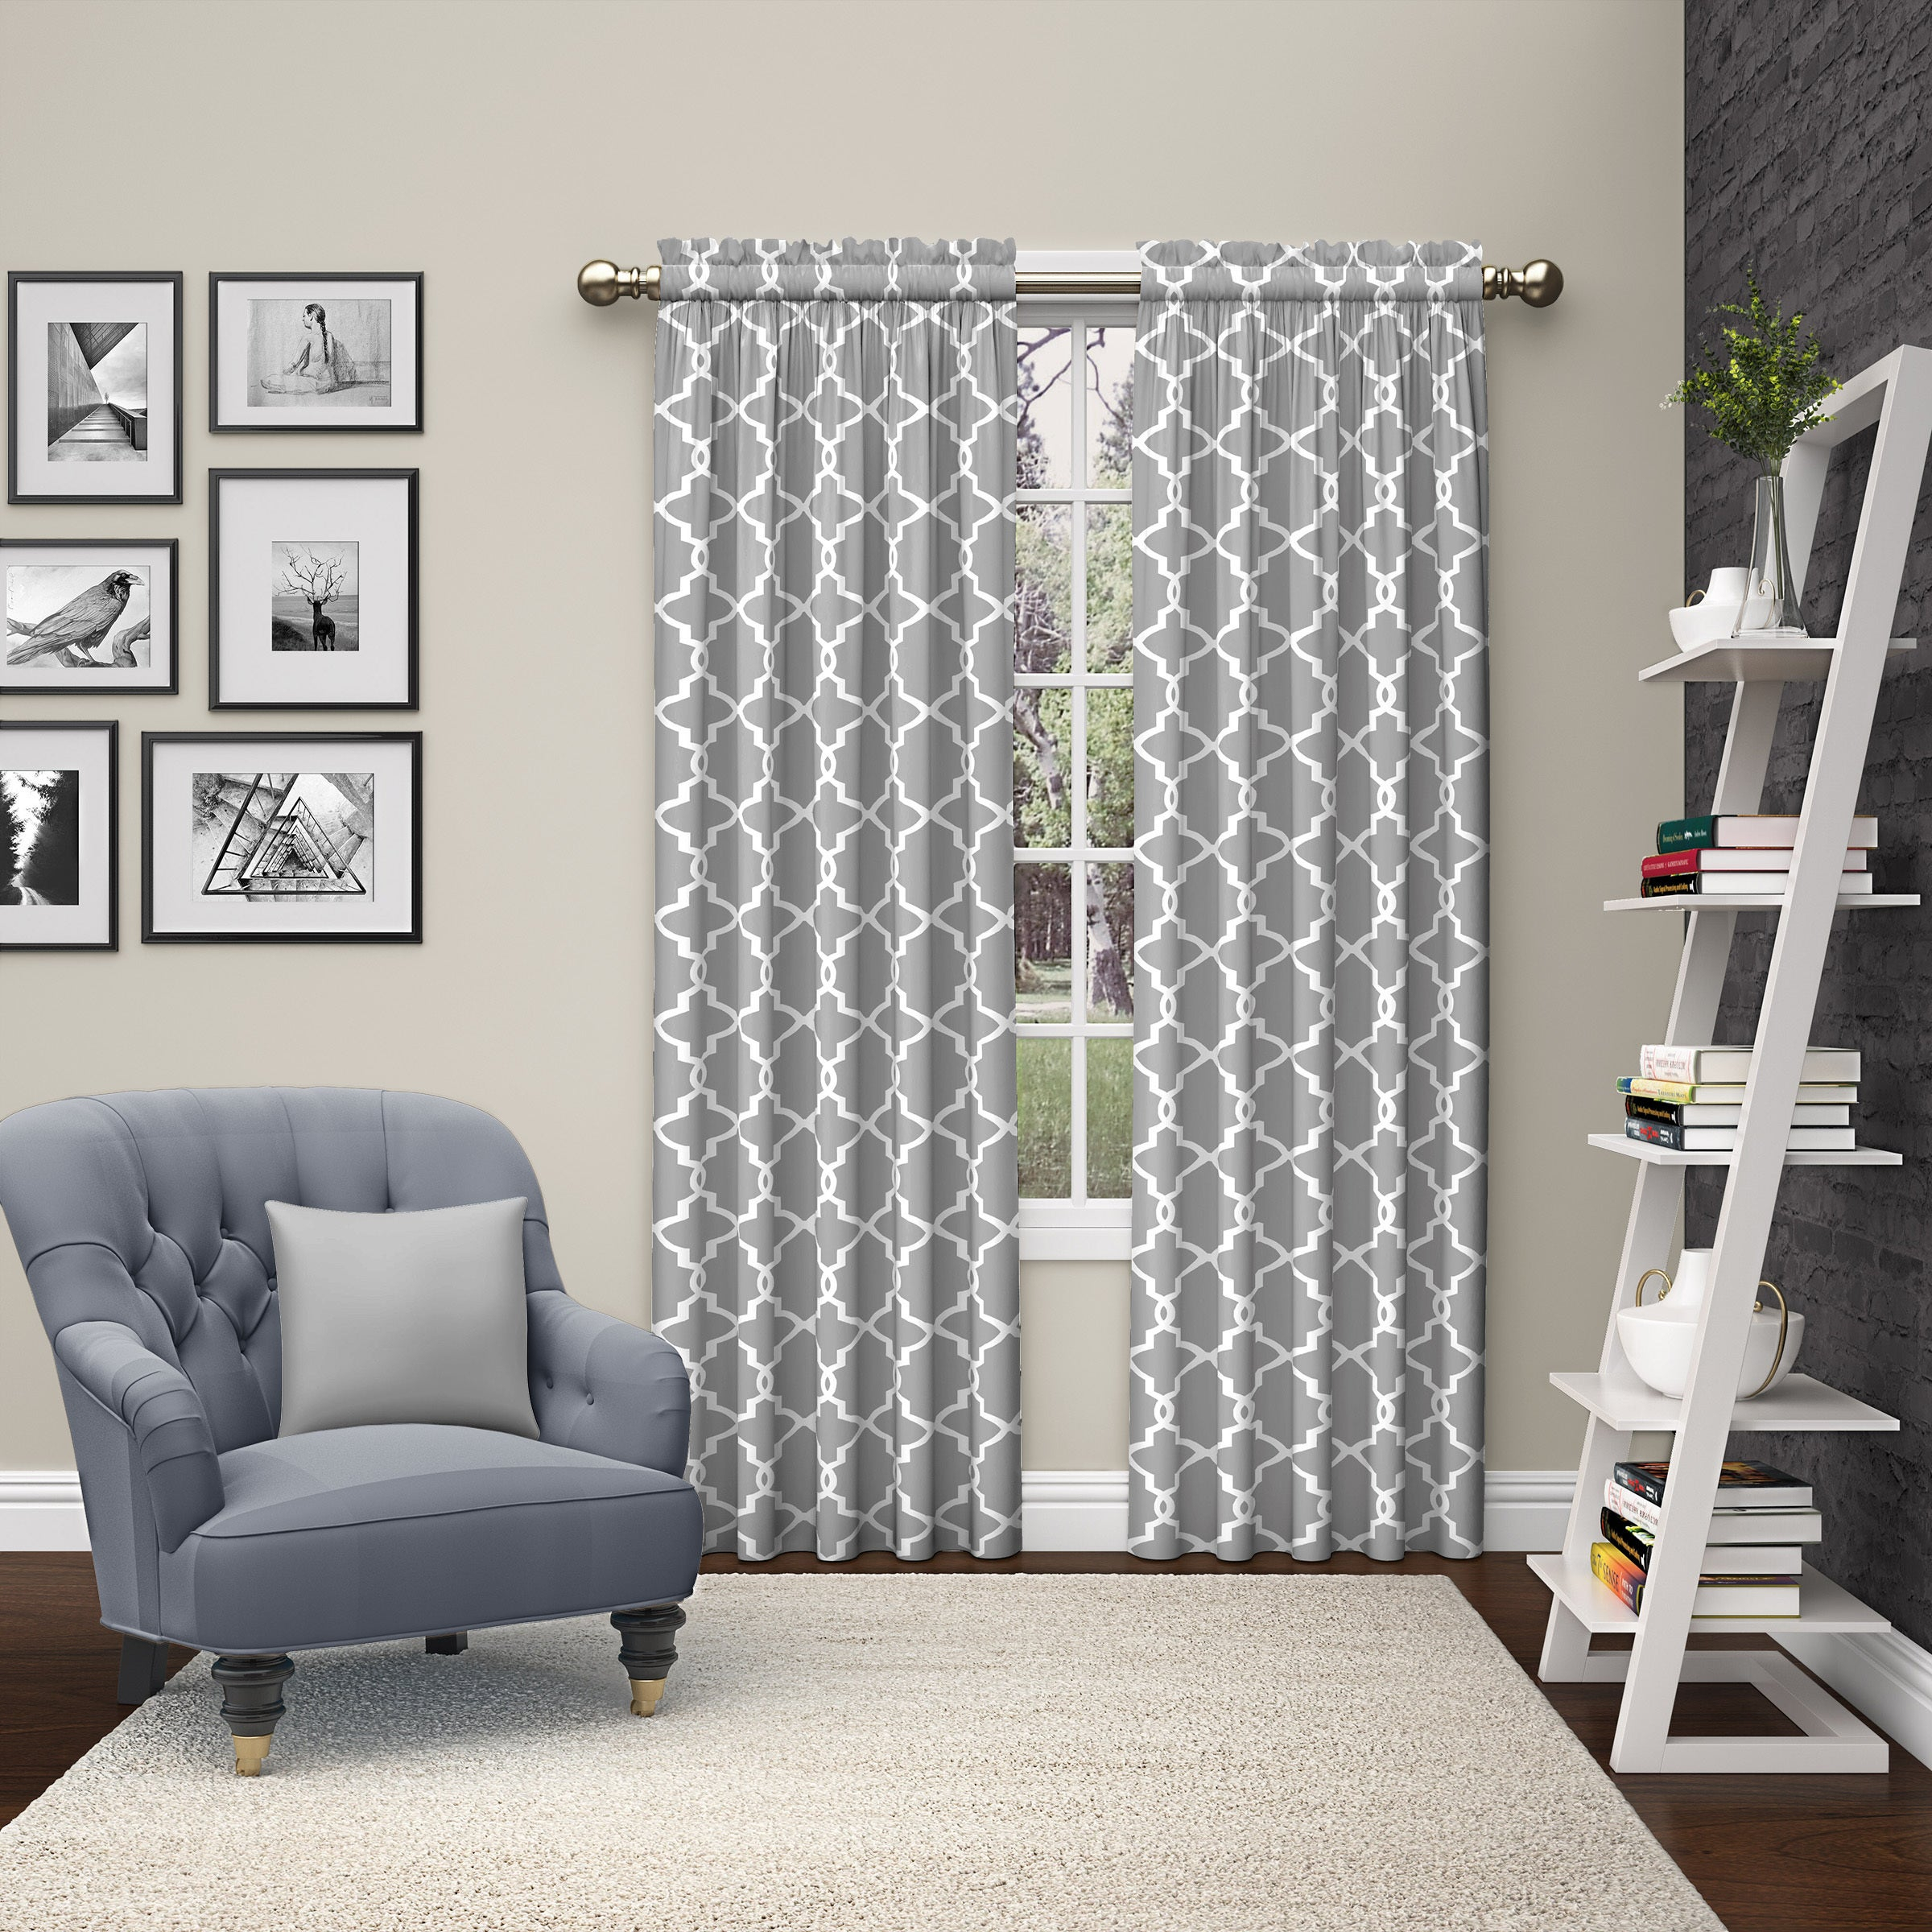 Pairs To Go Vickery Rod Pocket Curtain Panel Pair With Regard To Curtain Panel Pairs (View 15 of 20)